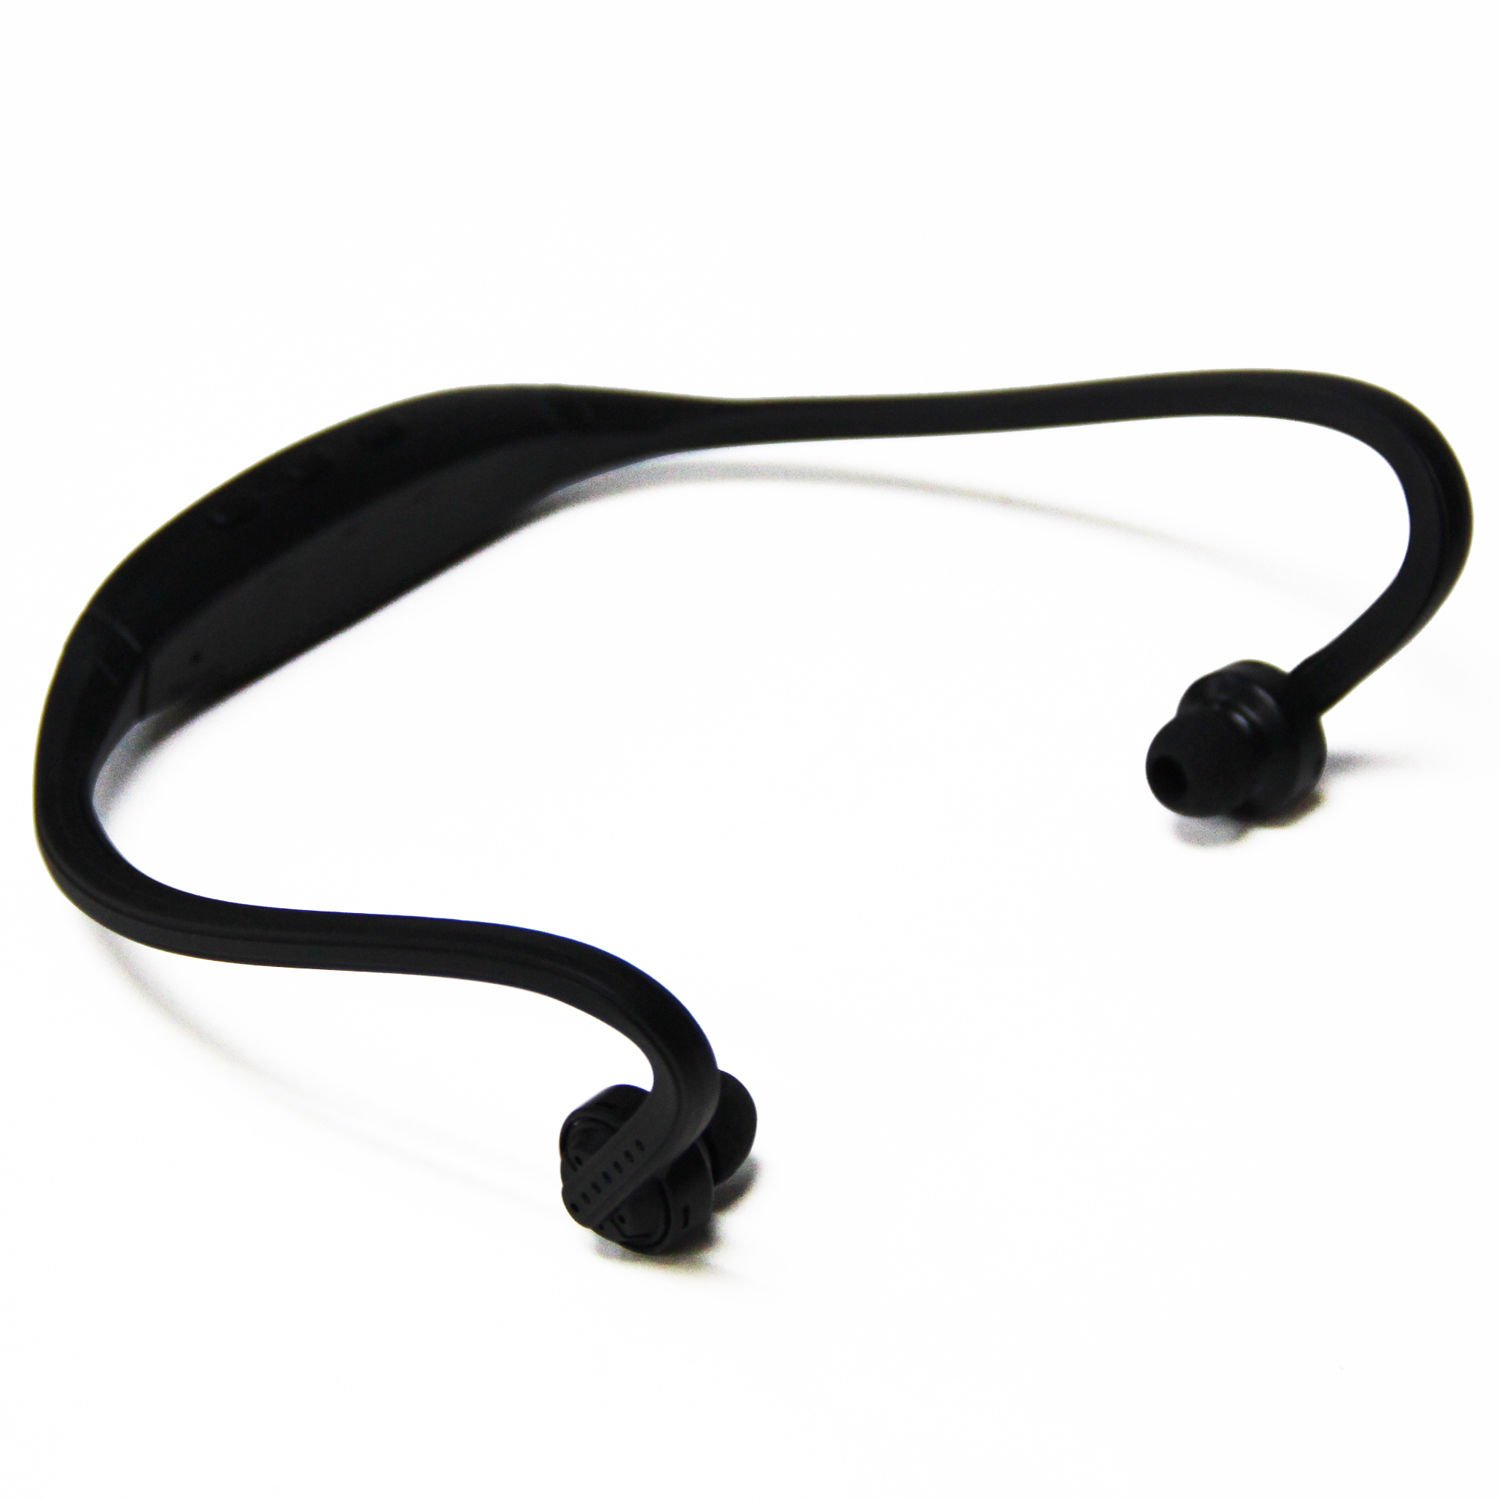 sa wireless bluetooth headset headphone earphone for cell phone iphone laptop pc ebay. Black Bedroom Furniture Sets. Home Design Ideas